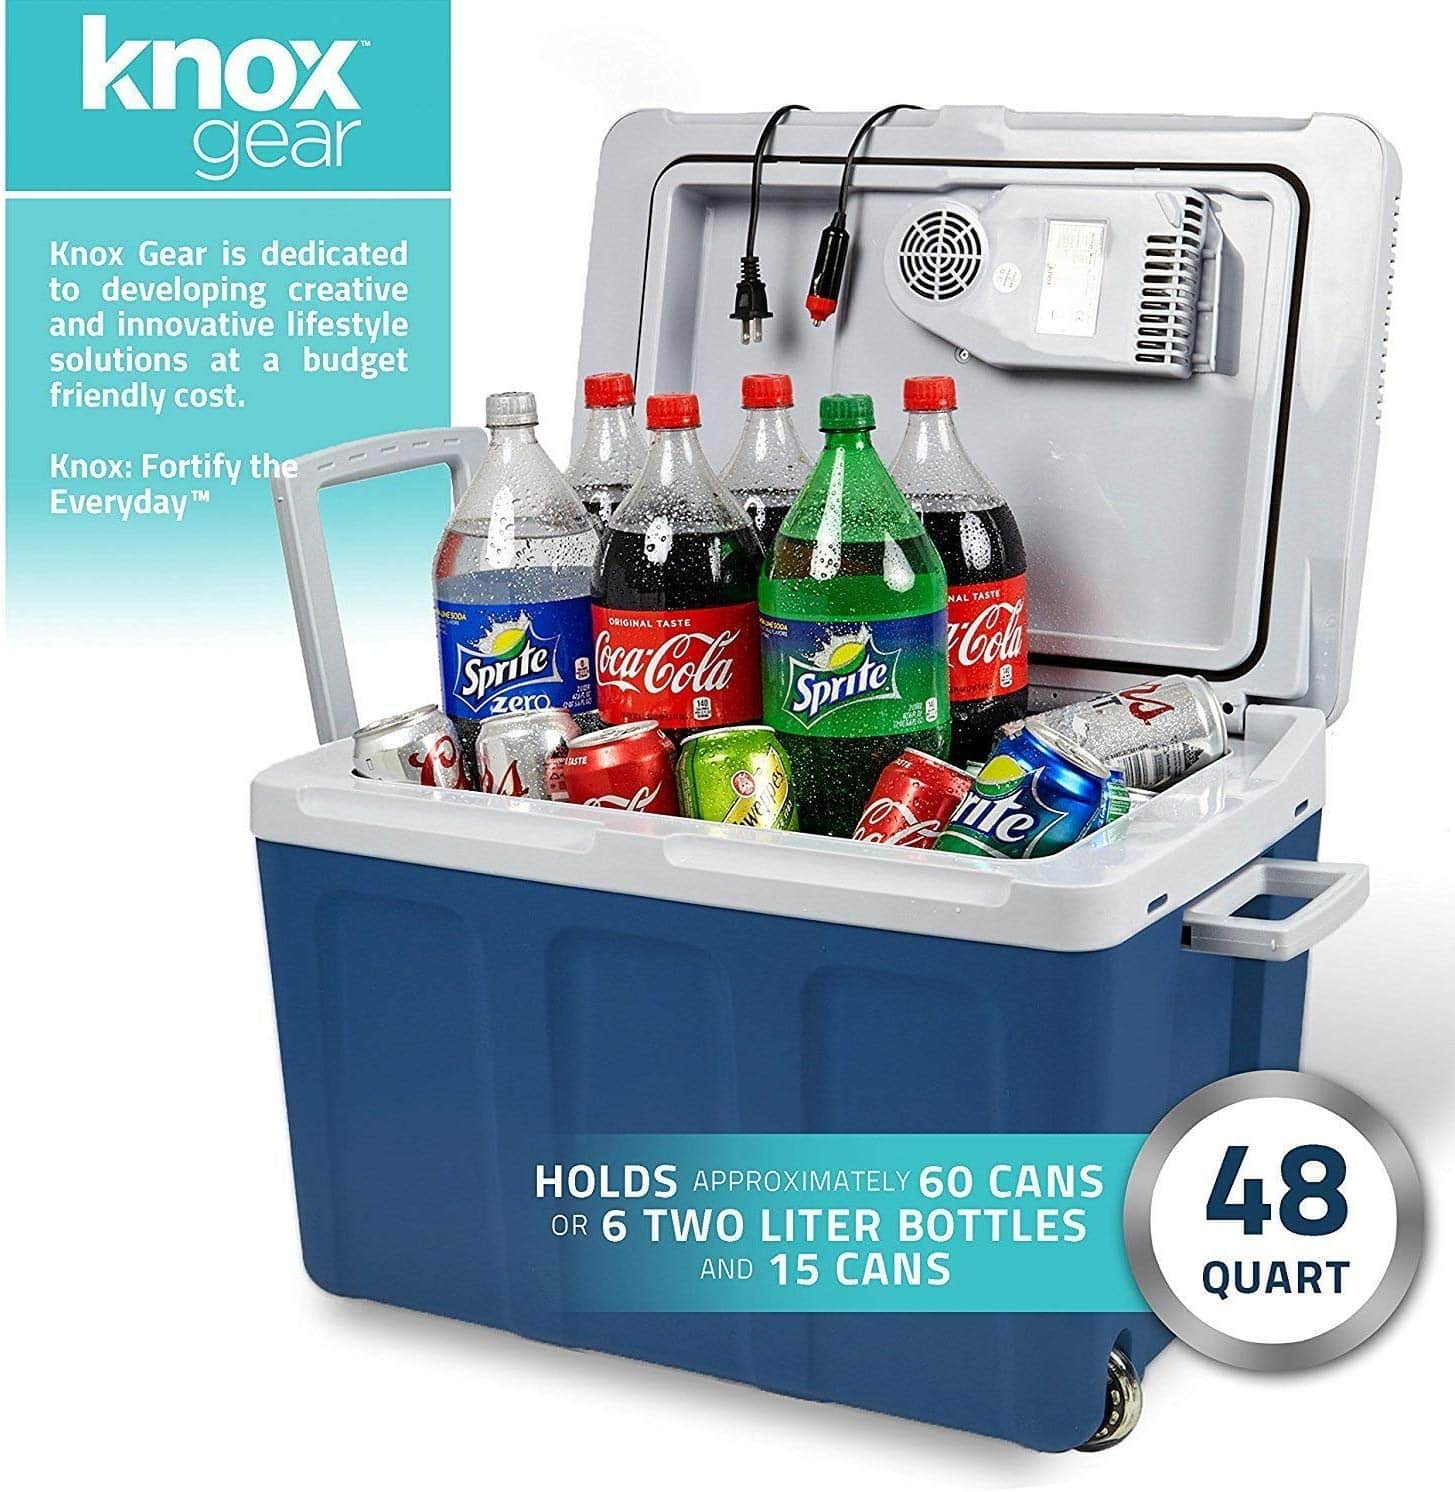 Top 10 Best Electric Coolers for traveling in 2020 Reviews & Buyer's Guide